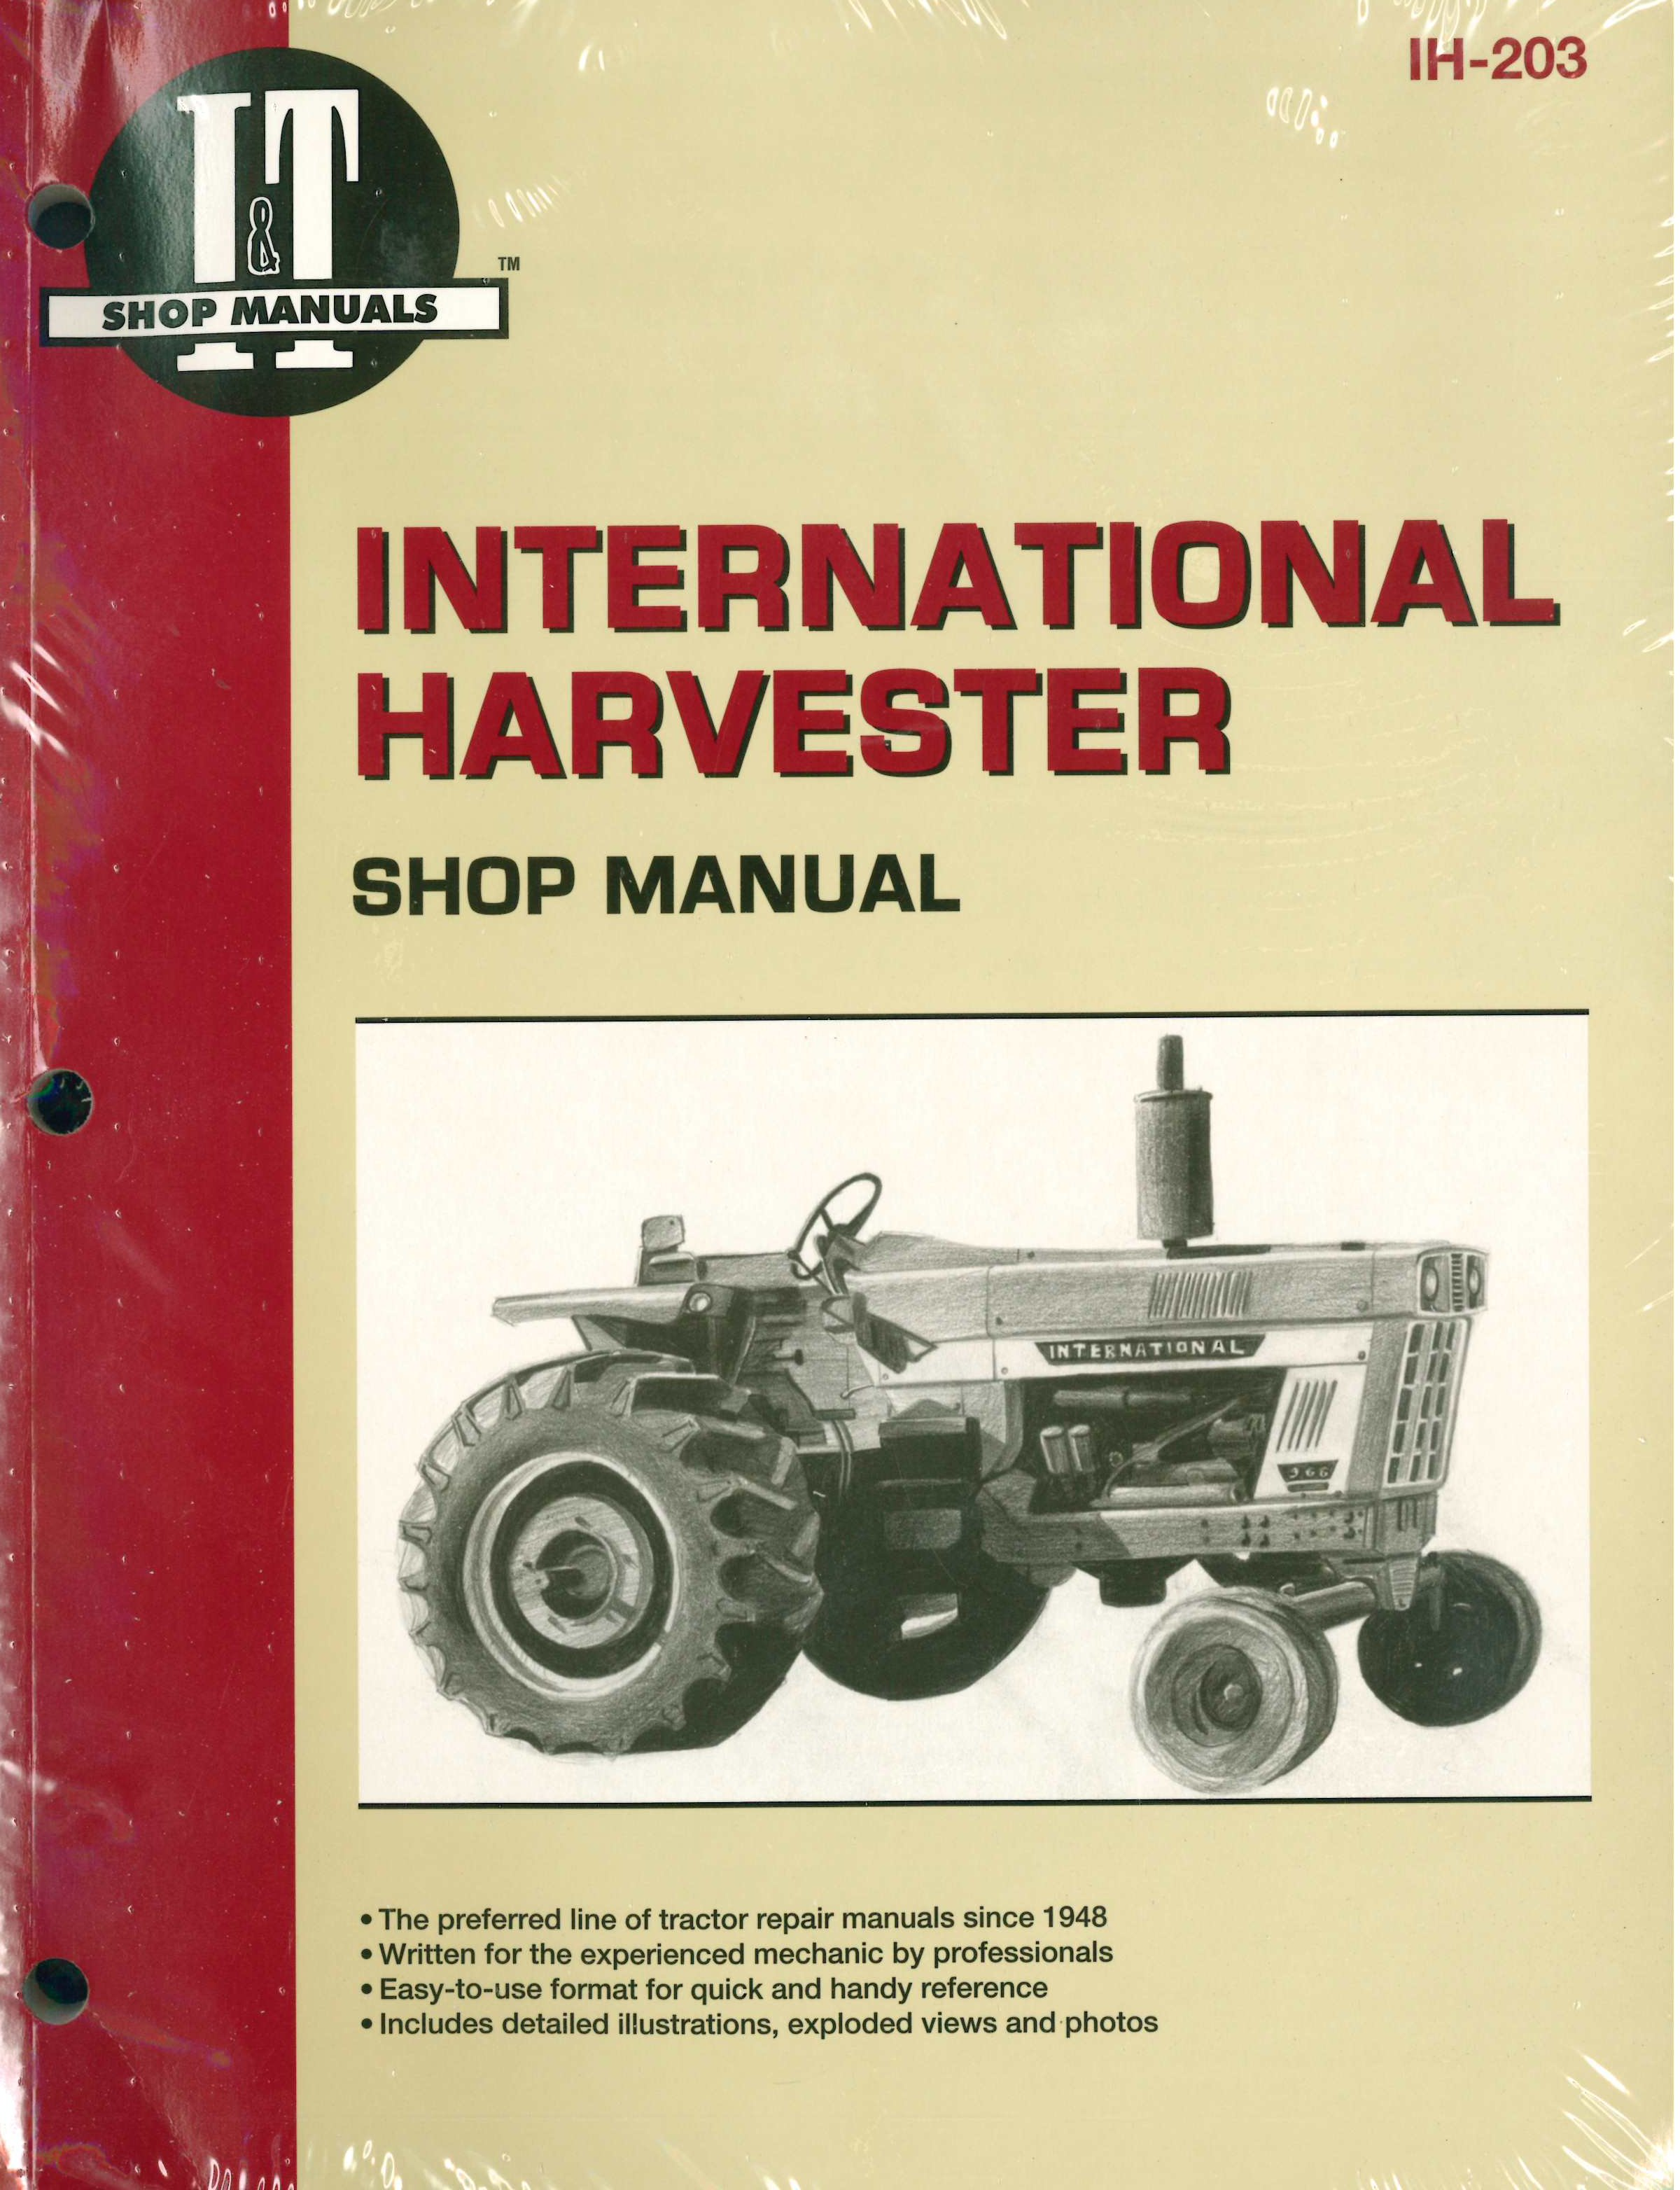 International Harvester Tractor Service Manual 454 464 484 574 584 674 766  786 826 886 966 986 1026 1066 1086